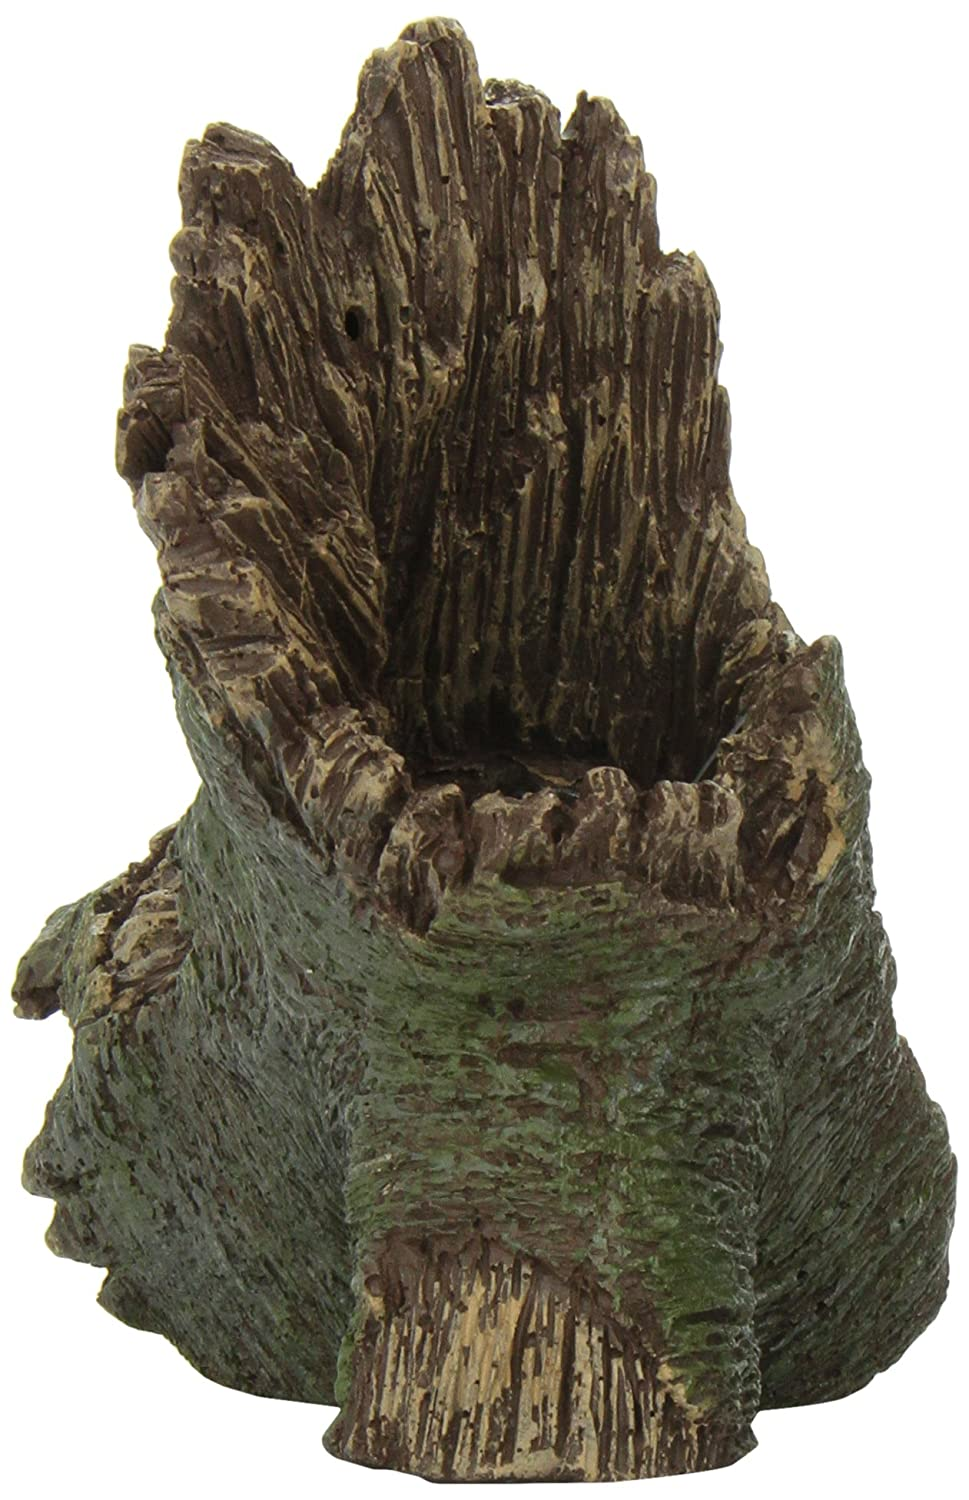 Amazon.com : Aquatic Creations Hollow Log Stump Aquarium Ornament : Aquarium Decor Ornaments : Pet Supplies